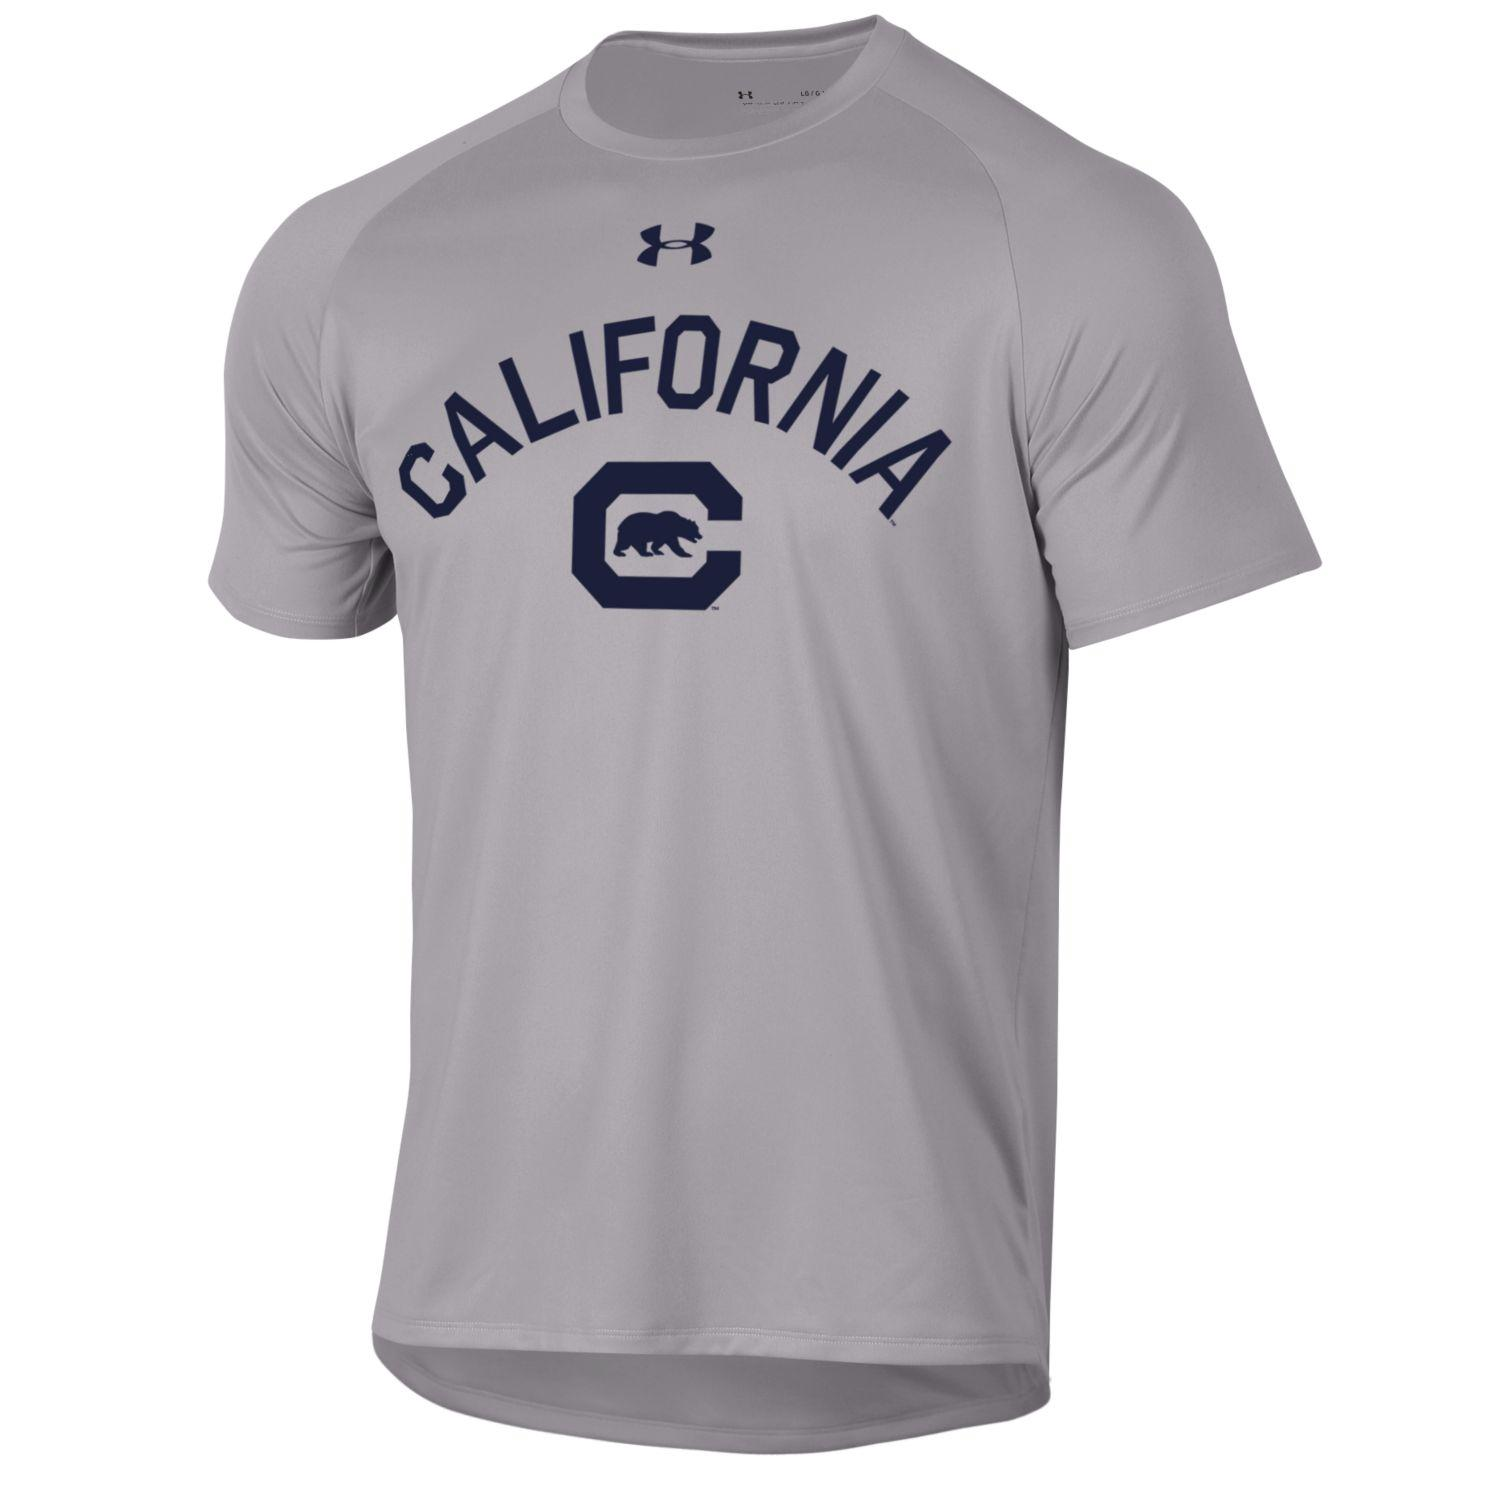 Men's Tech Tee 2.0 Under Armour C Bear